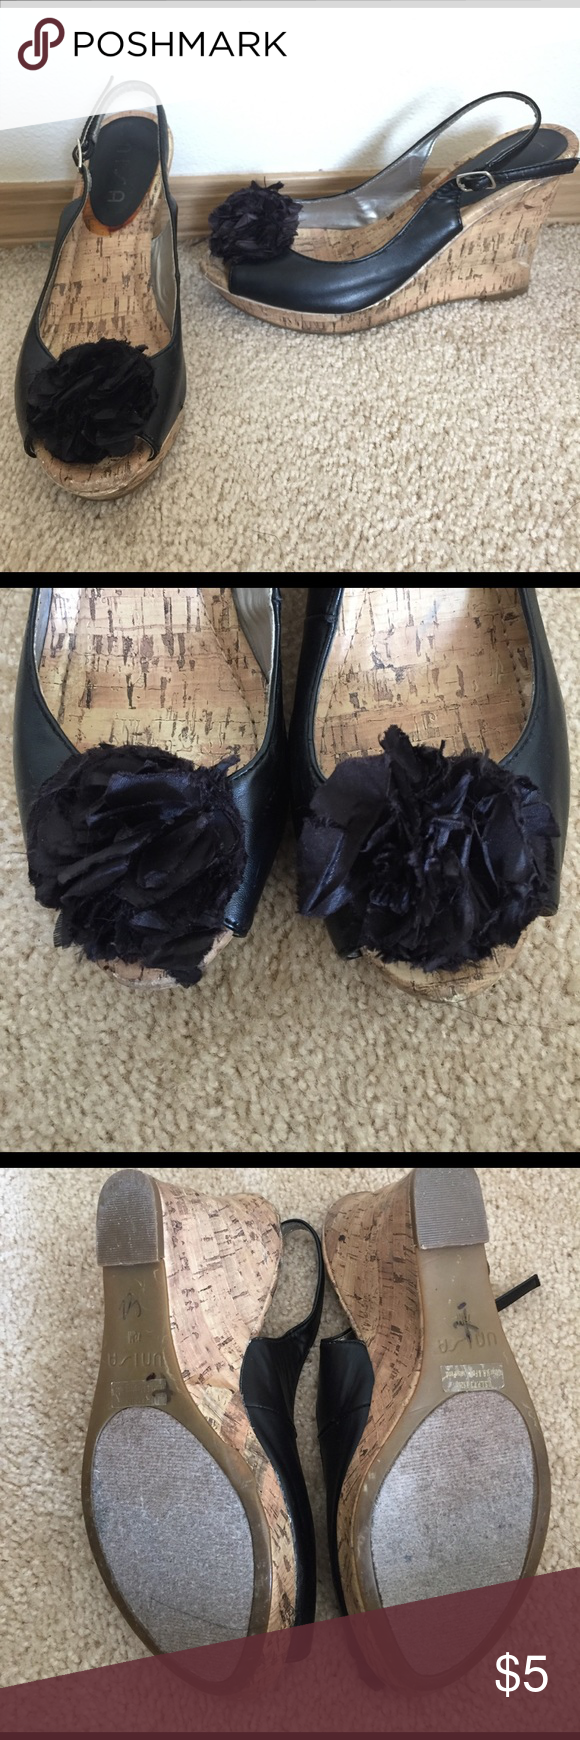 Unisa Wedge peep toe sandals Black leather with cork covered wedges. Black flower with small crystal center on toe. Peep toe. Not perfect but in good condition. Shoes Wedges